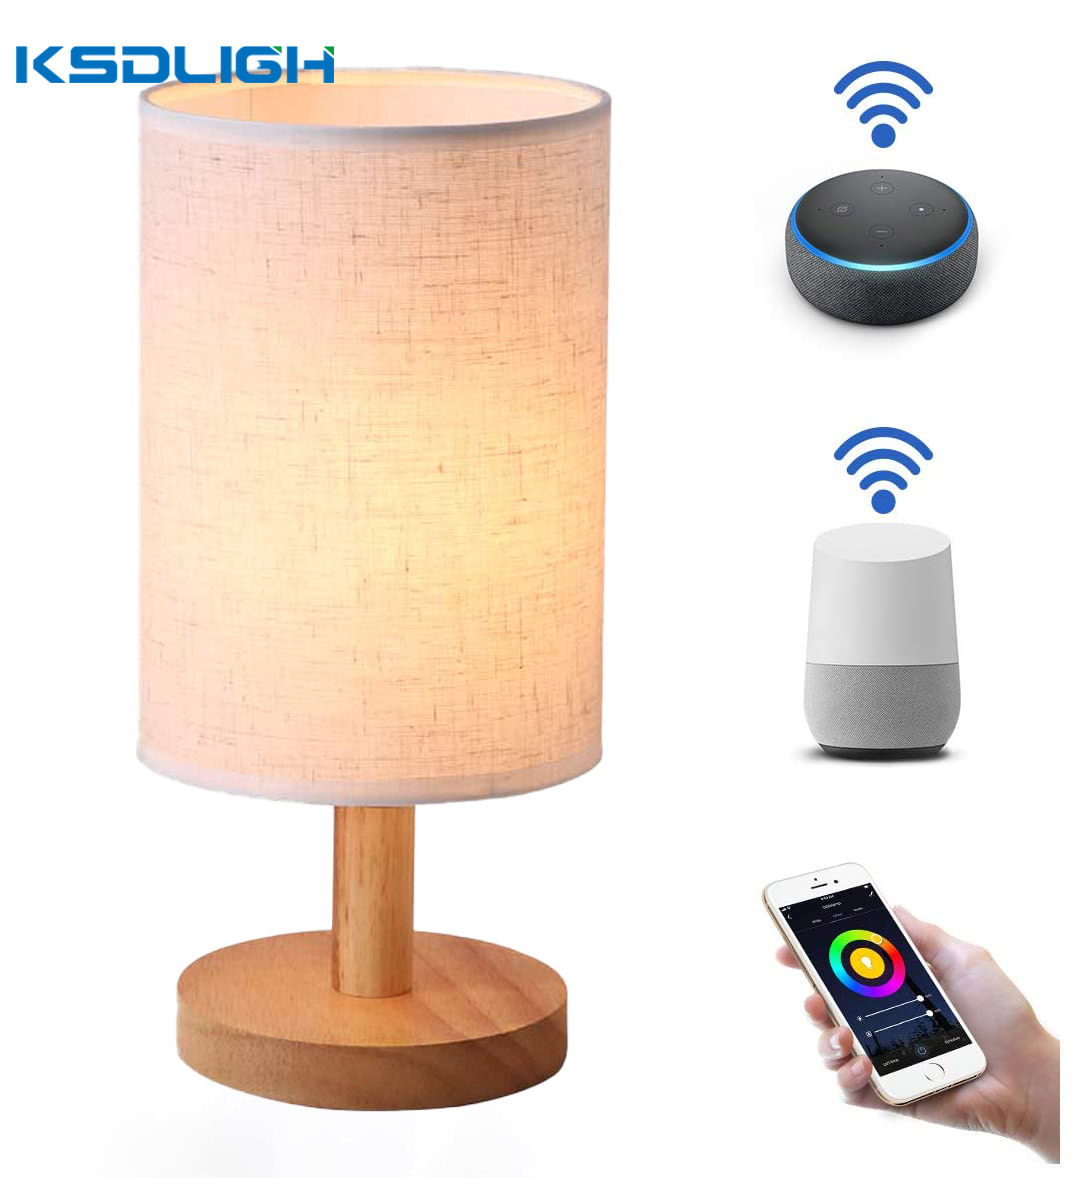 Smart Bedside Nordic Wood Table Lamp Modern 9W Dimmable Multicolour Night Light for Bedroom Living Room with Alexa Google Home